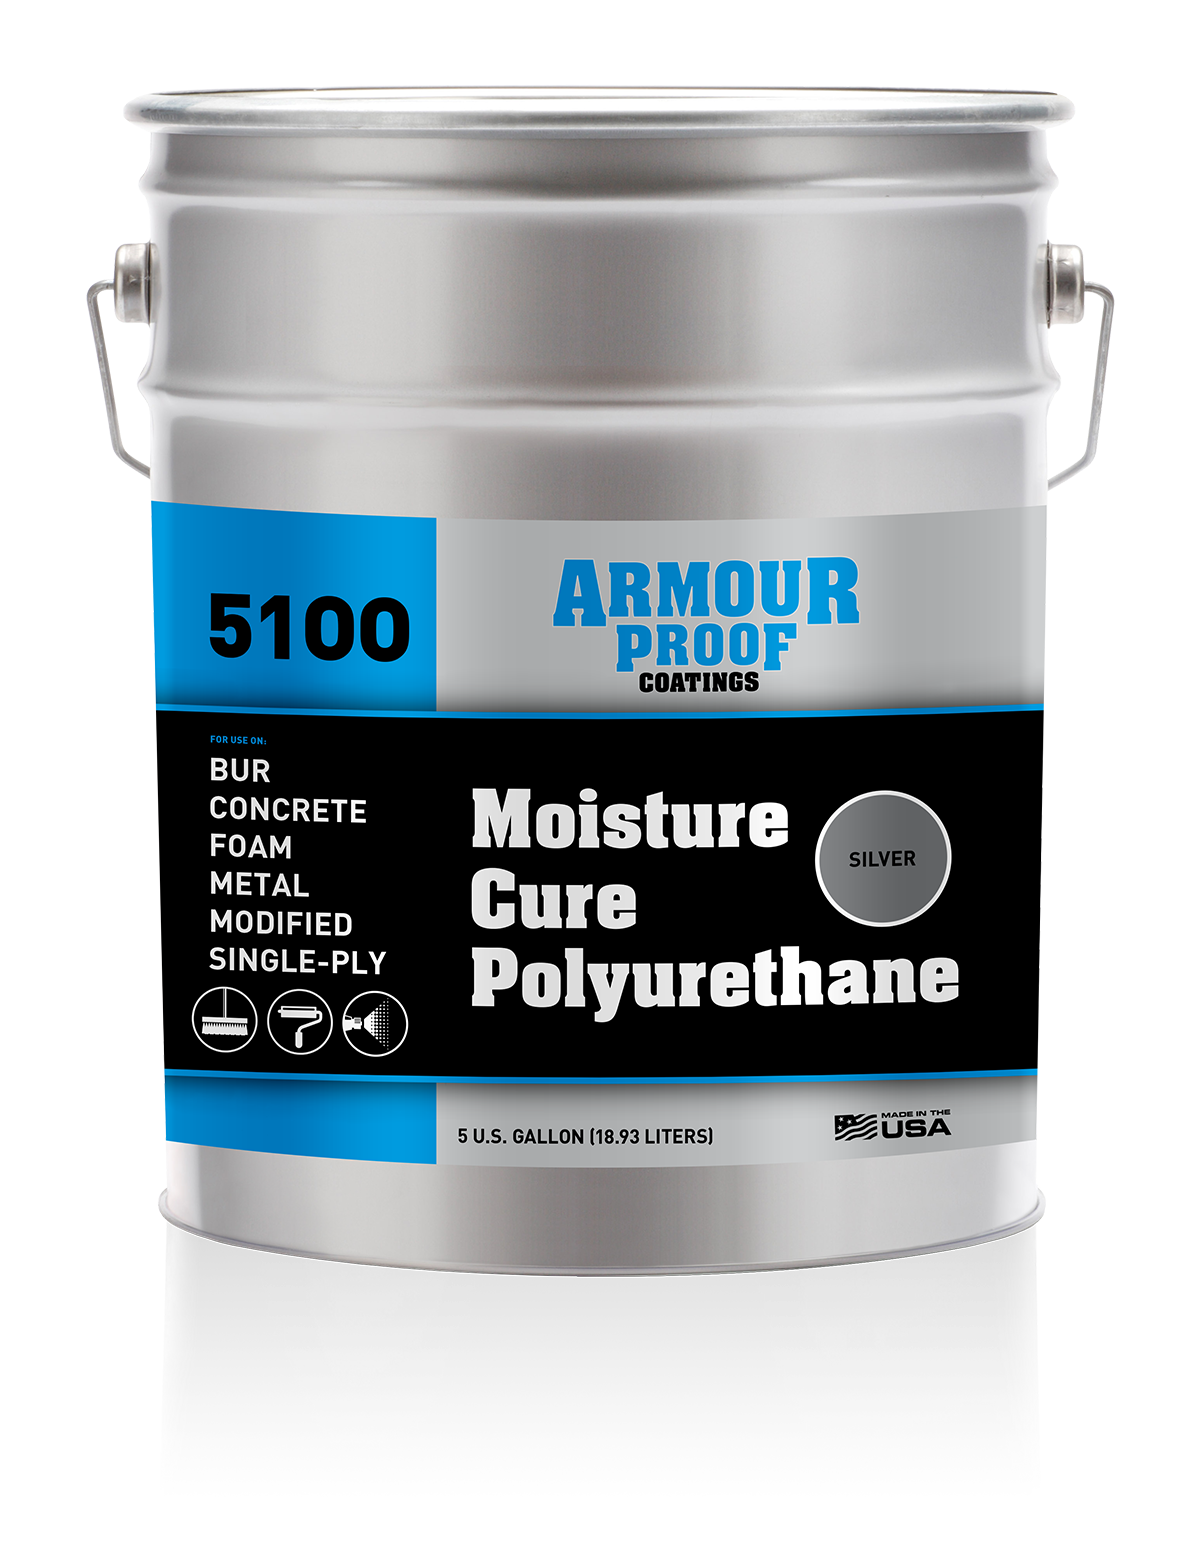 Image of United Asphalt's Armour Proof 5100 (Silver) Moisture Cure Polyurethane